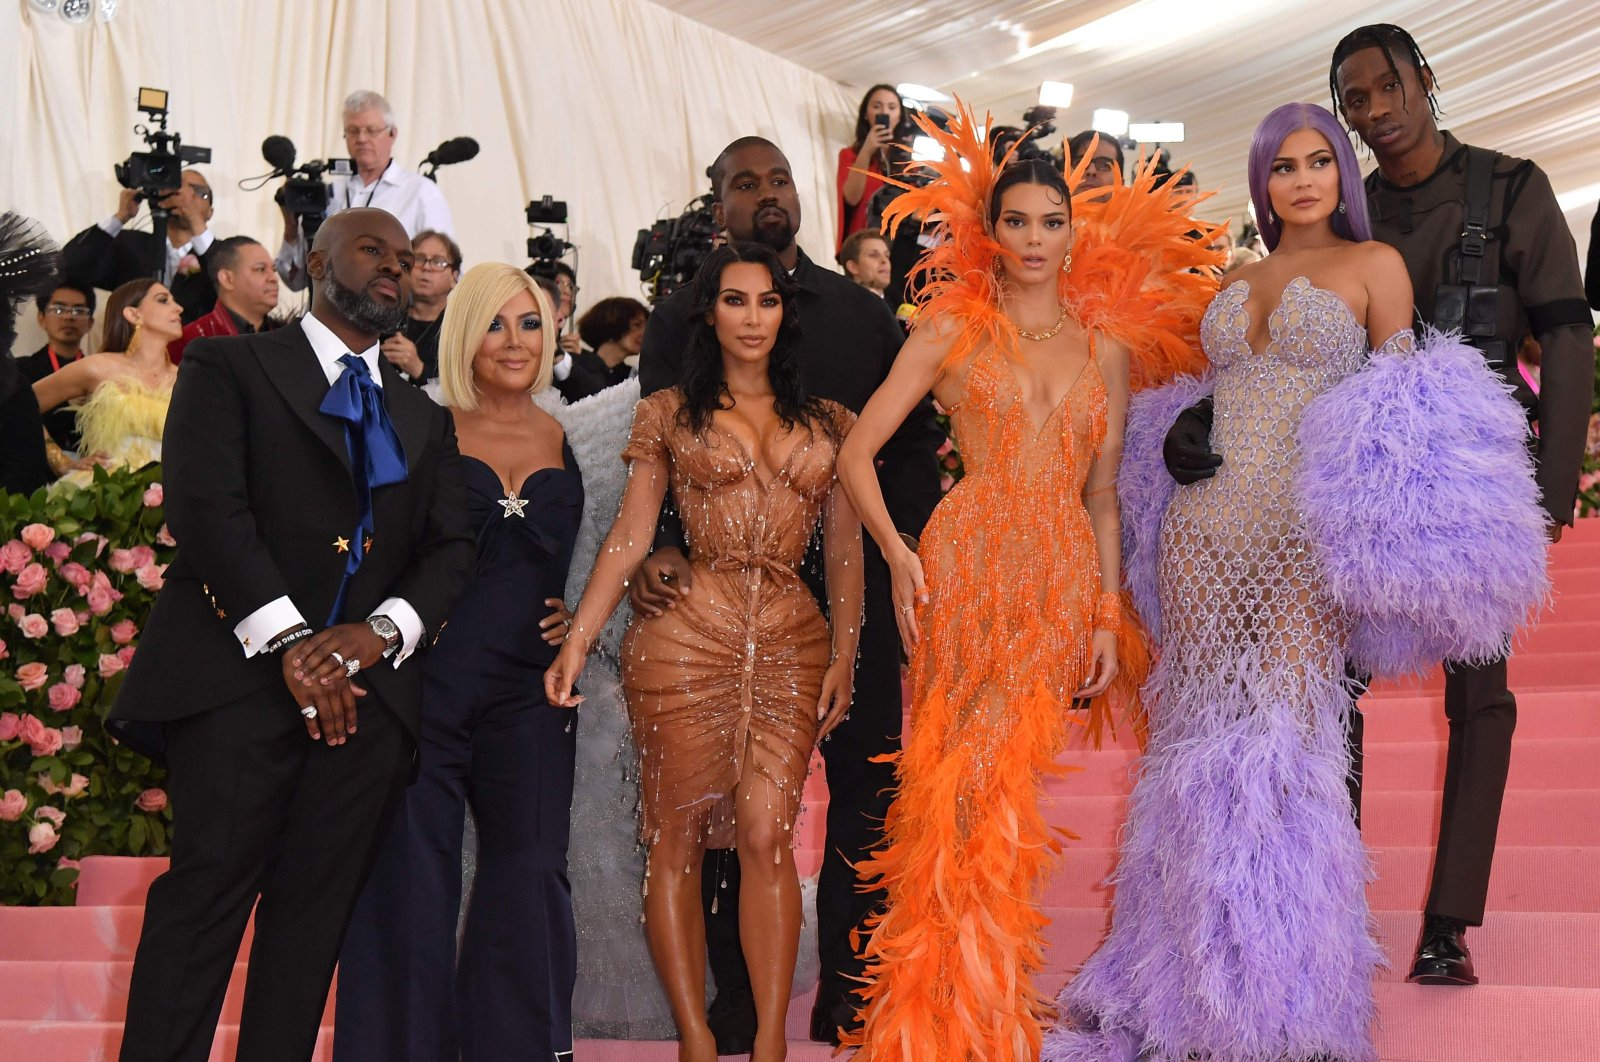 From left: Corey Gamble, Kris Jenner, Kim Kardashian West, Kanye West, Kendall Jenner, Kylie Jenner and Travis Scott arrive for the 2019 Met Gala at the Metropolitan Museum of Art in New York, May 6, 2019. (AFP PHOTO)